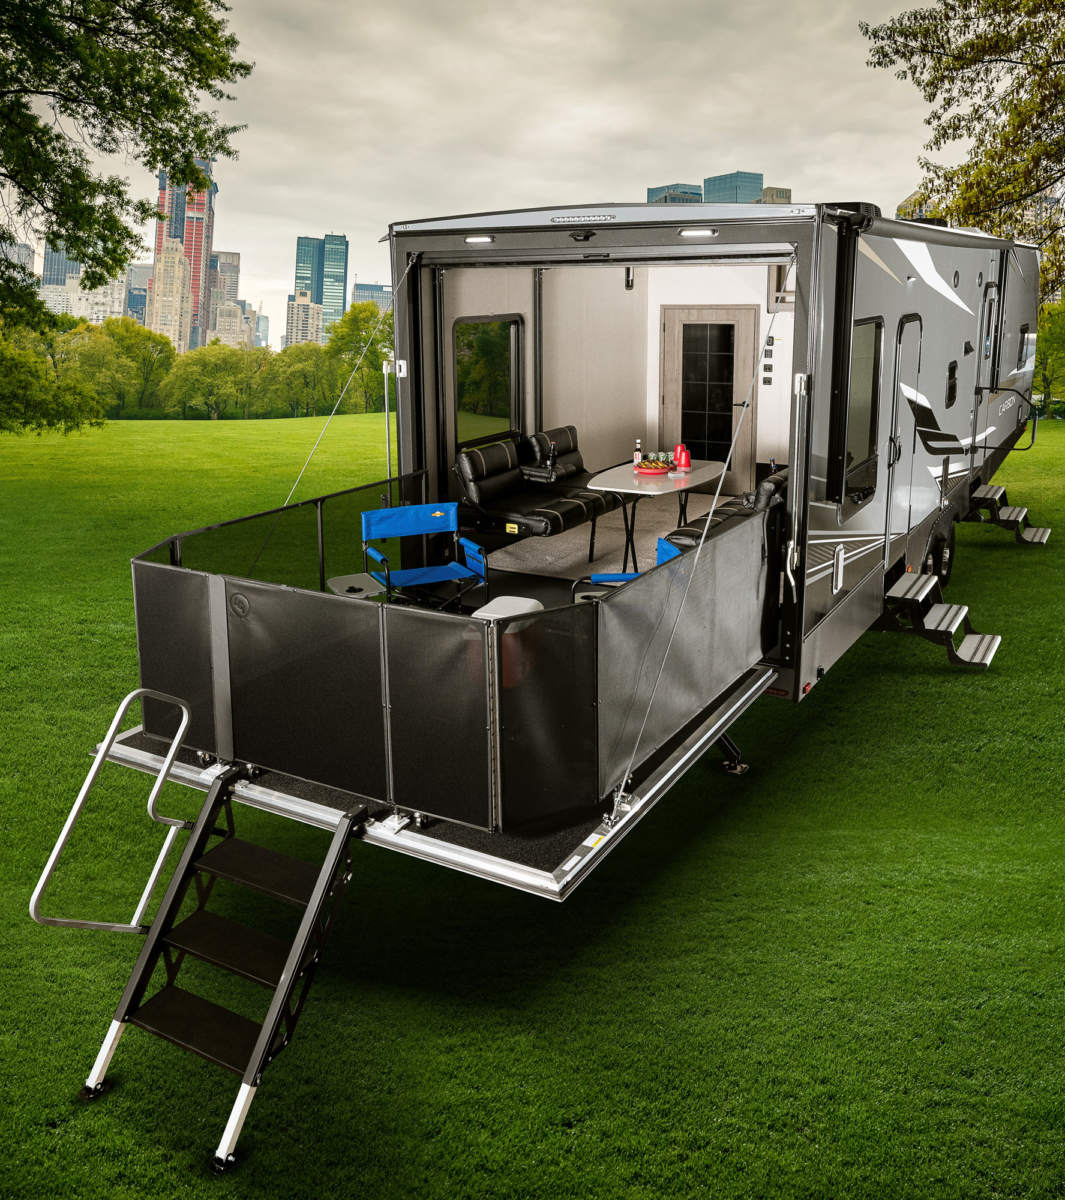 Keystone Carbon toy haulers offer new travel trailer options